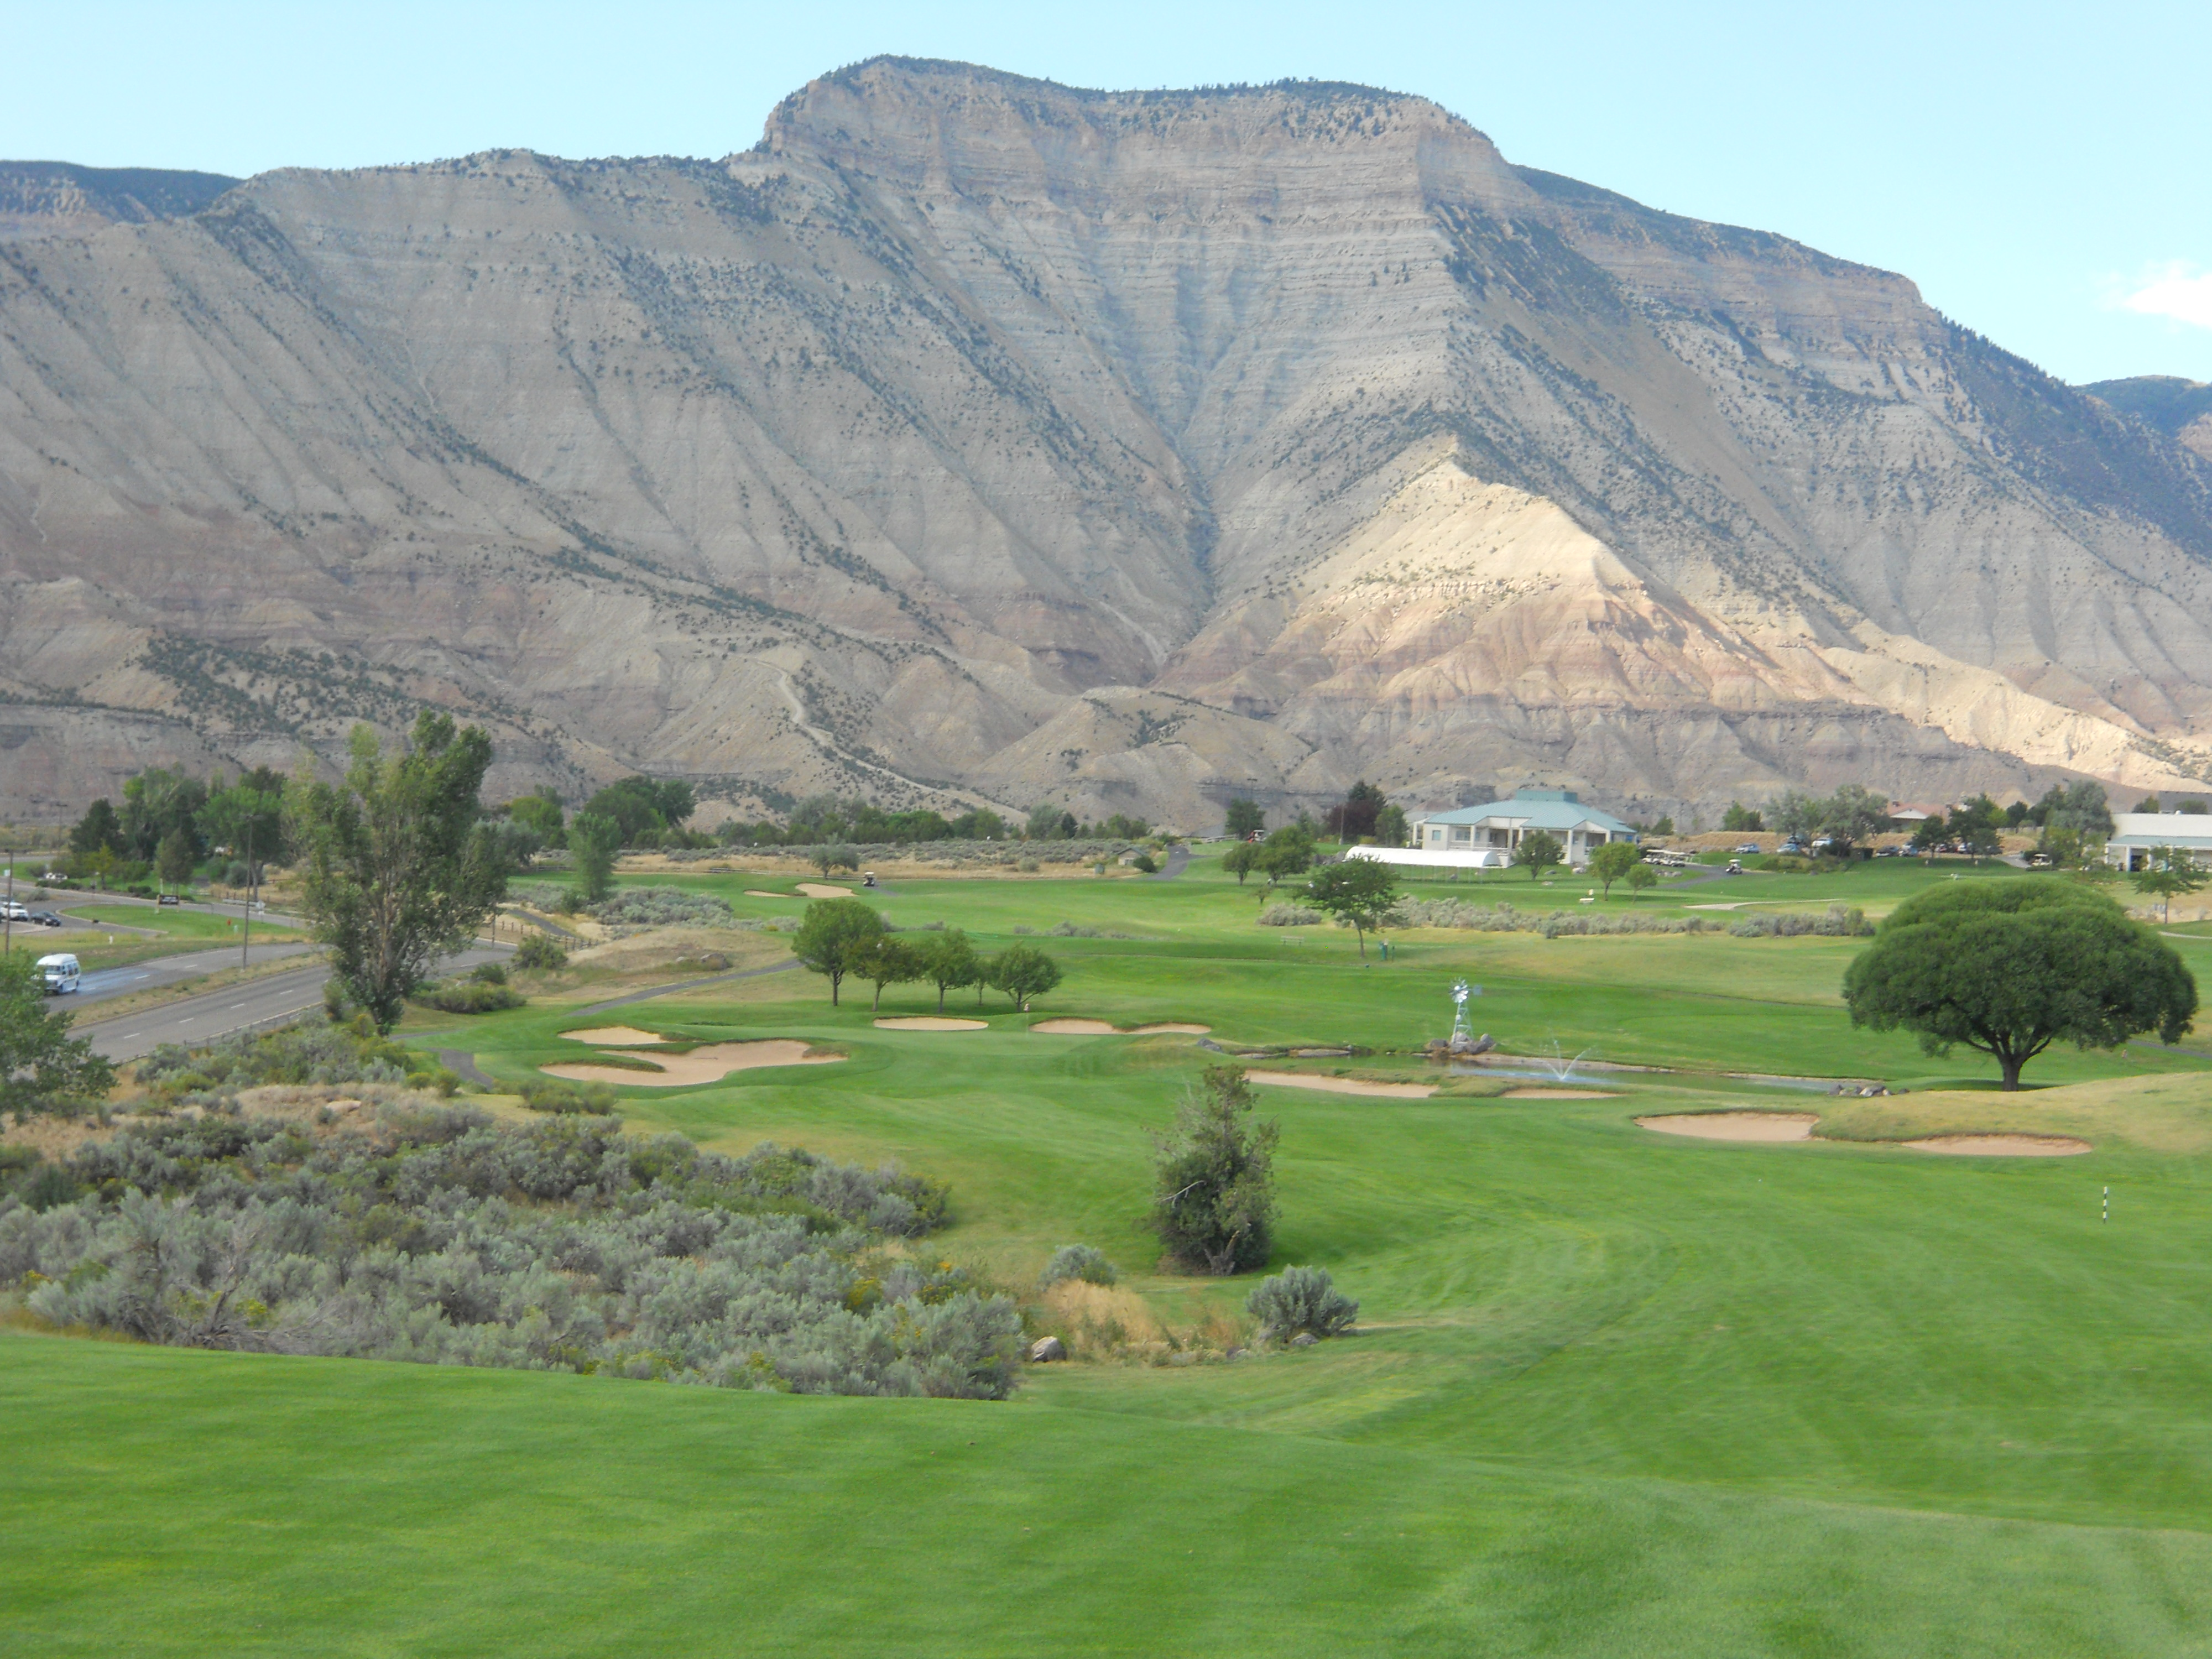 Battlement Mesa Golf Club Parachute, Colorado. Landscape of golf course in front of huge mountain.